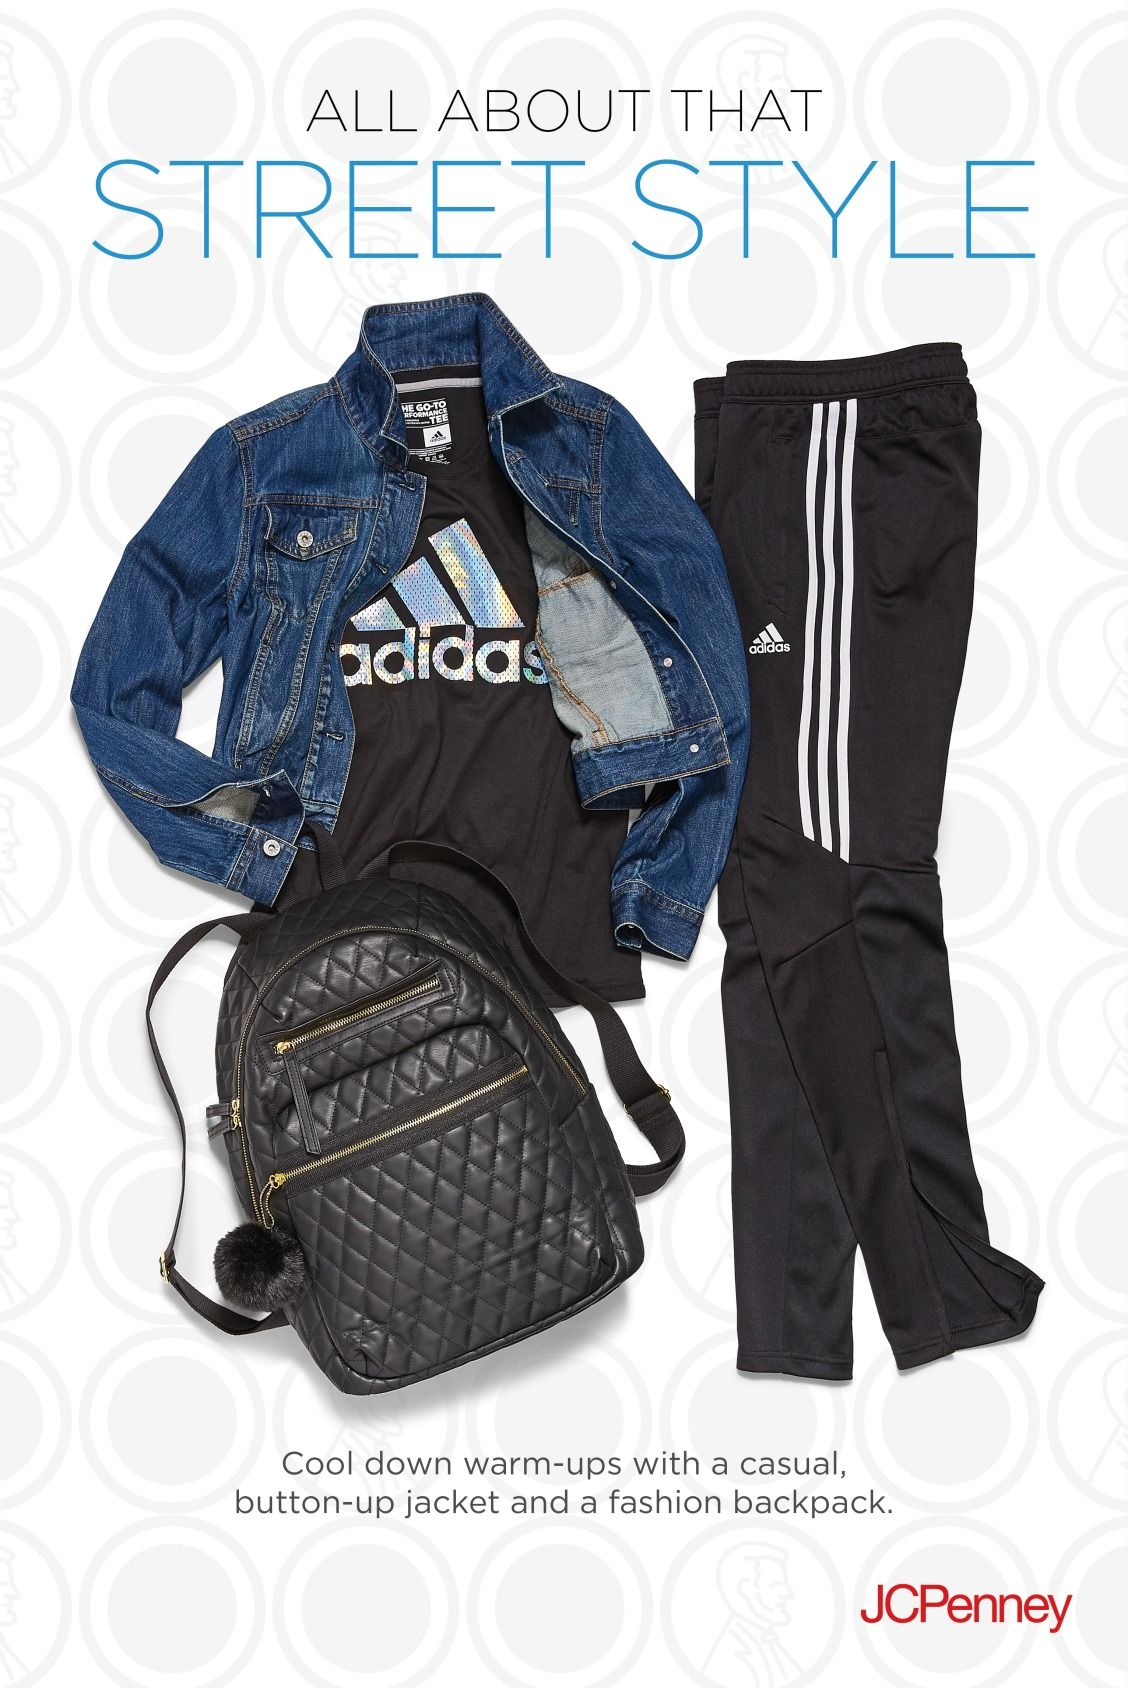 23eb90ec695d Pair adidas track pants with an adidas tee and layer with a quilted backpack  and denim jacket for the ultimate Adidas ...